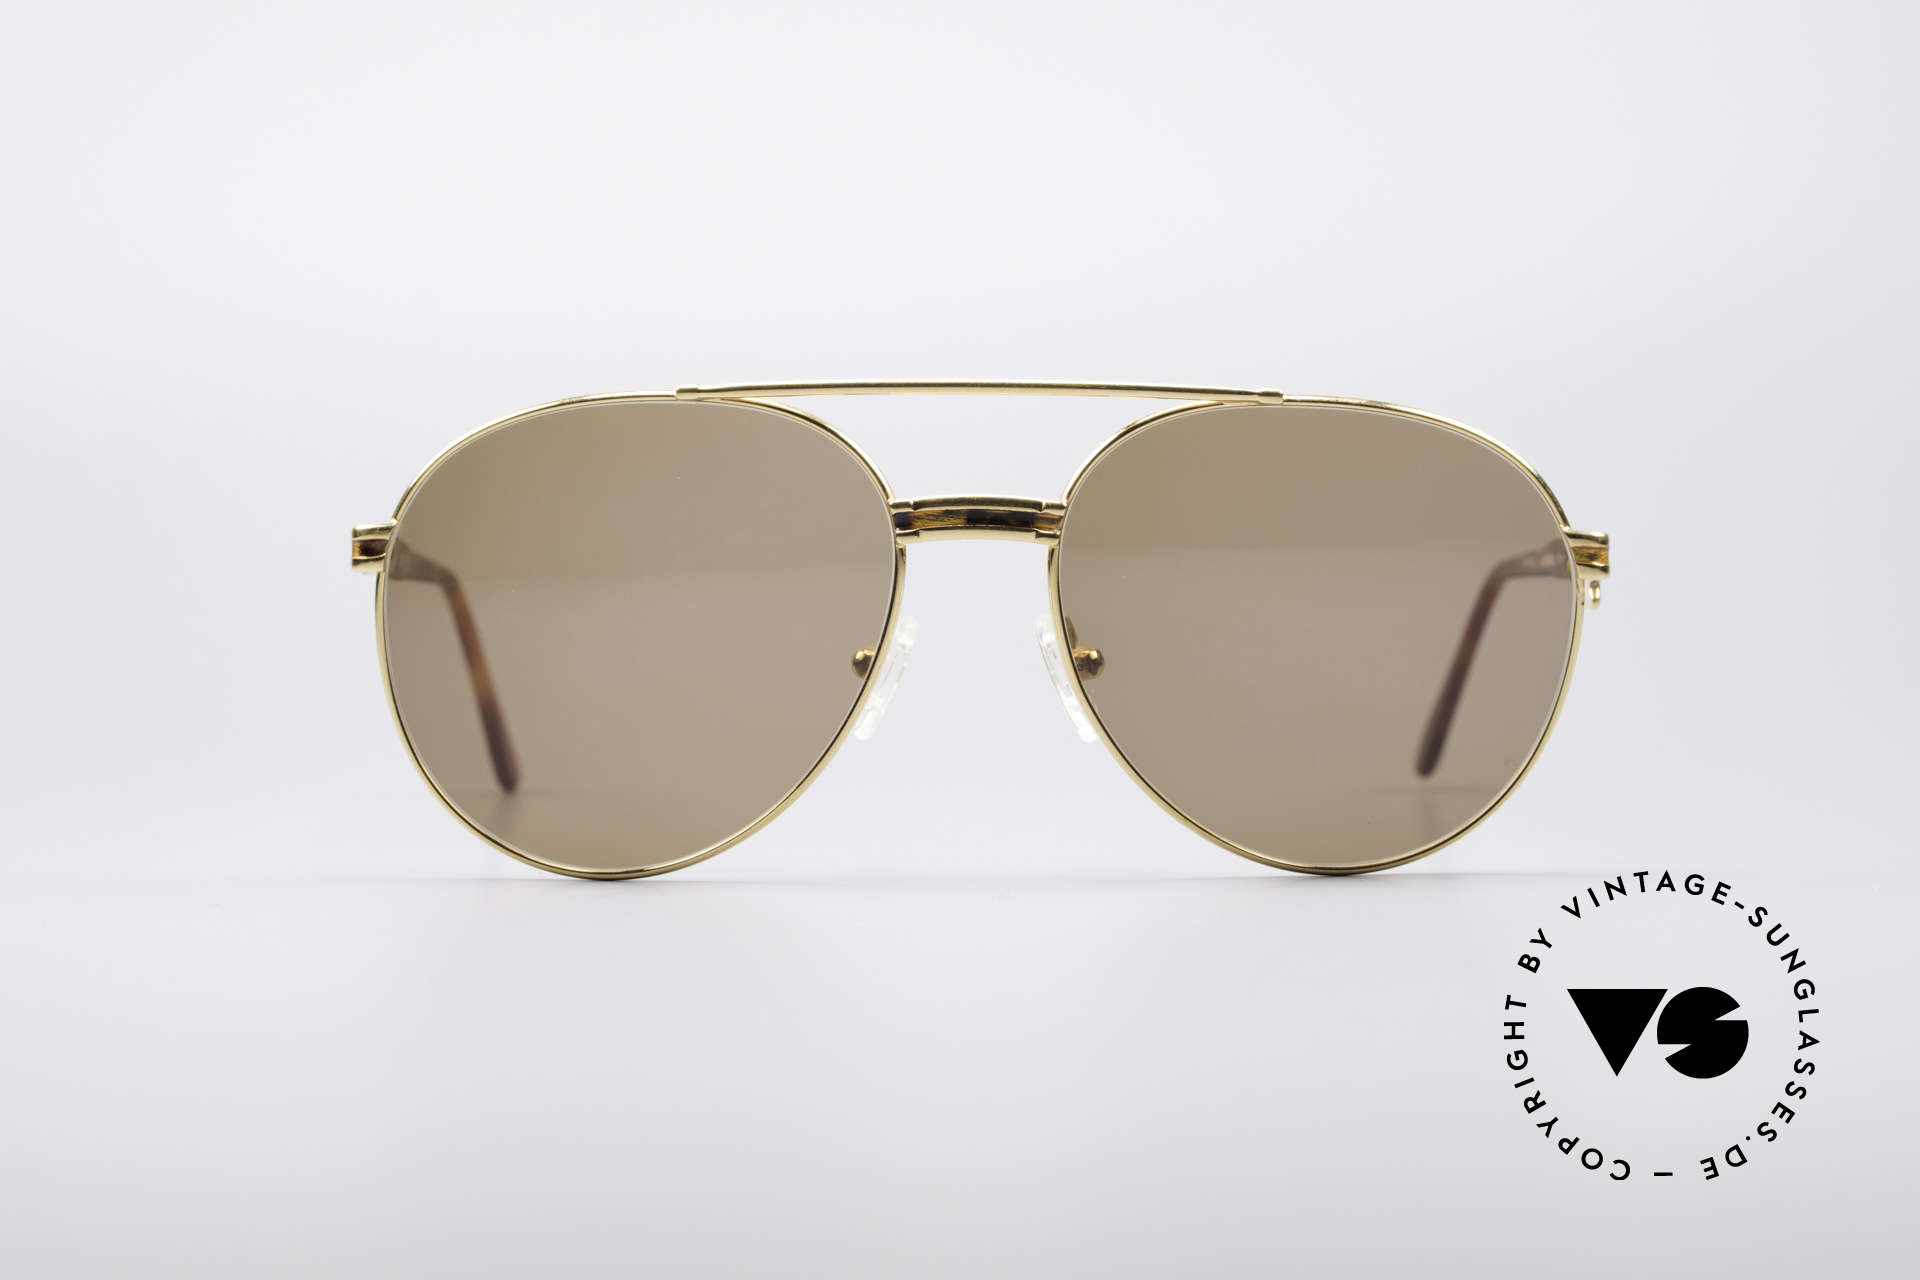 Derapage D2 Vintage No Retro Shades, classic combination of materials and colors, Made for Men